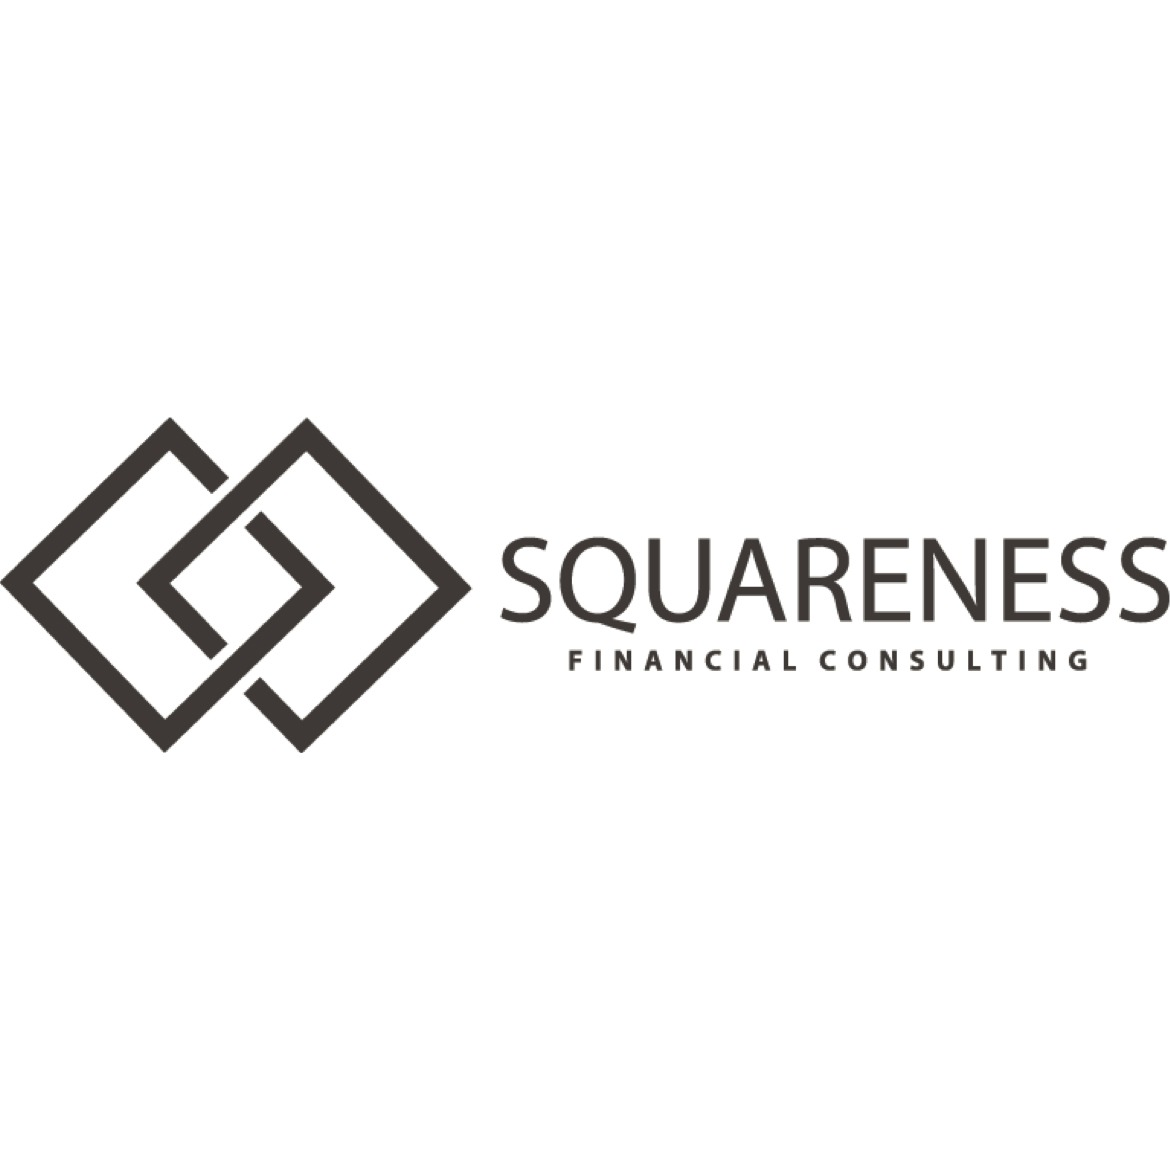 the Squareness logo.